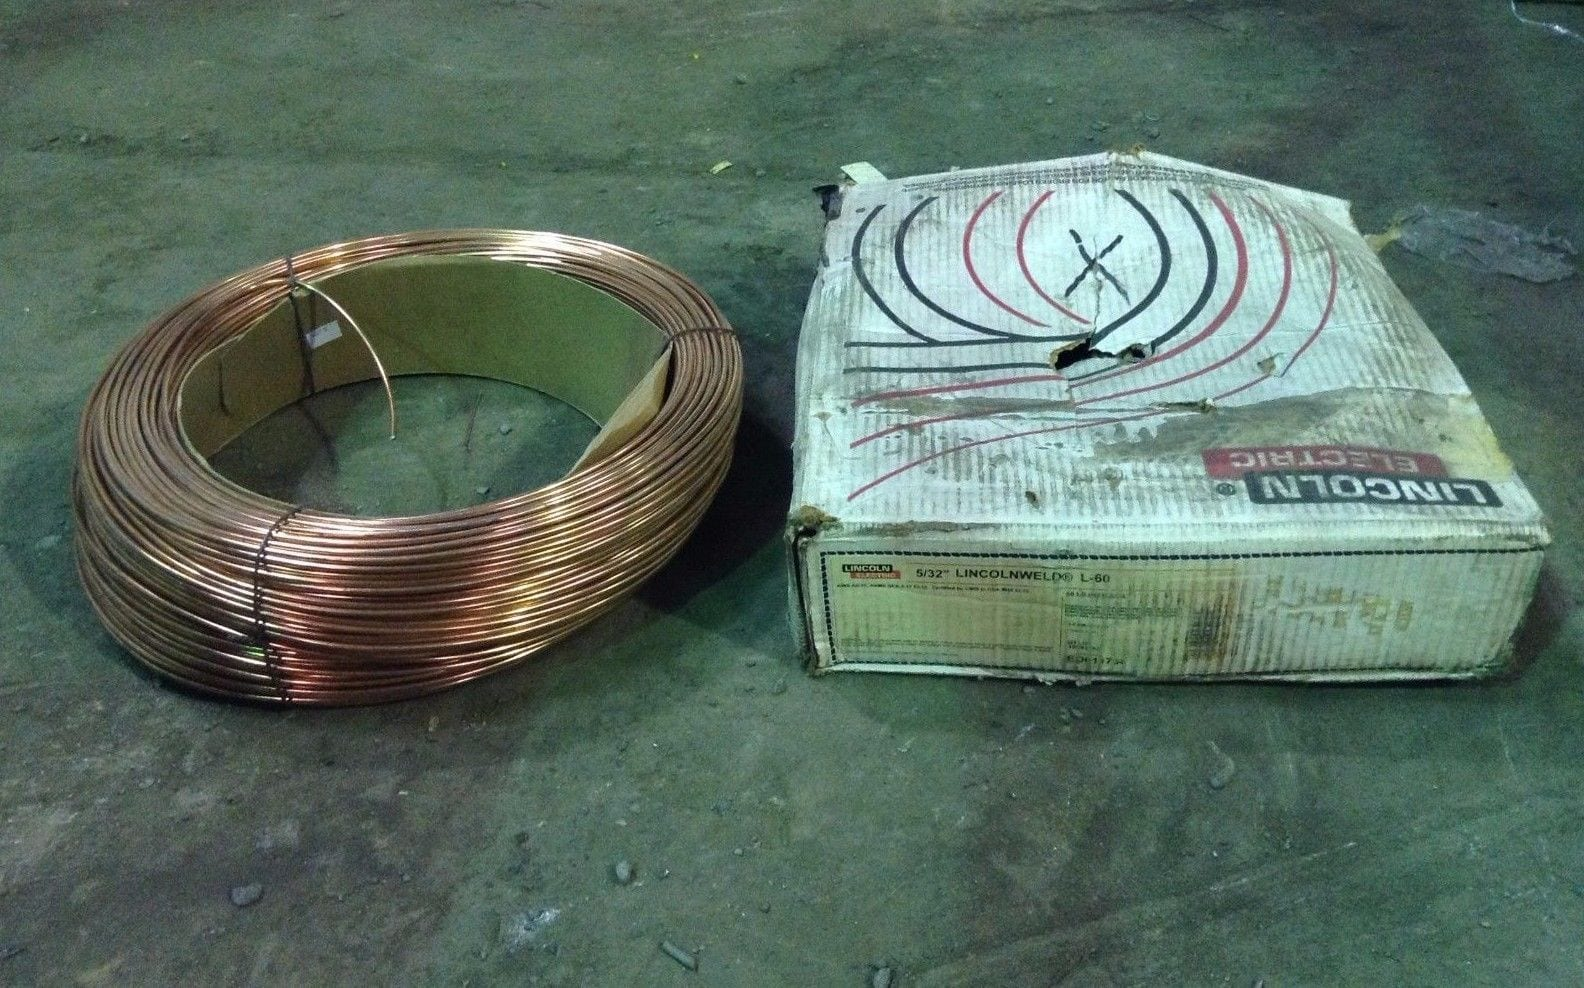 Lincoln Electric Lincolnweld L-60 ED011758 Mig Welding Wire 5/32 ...